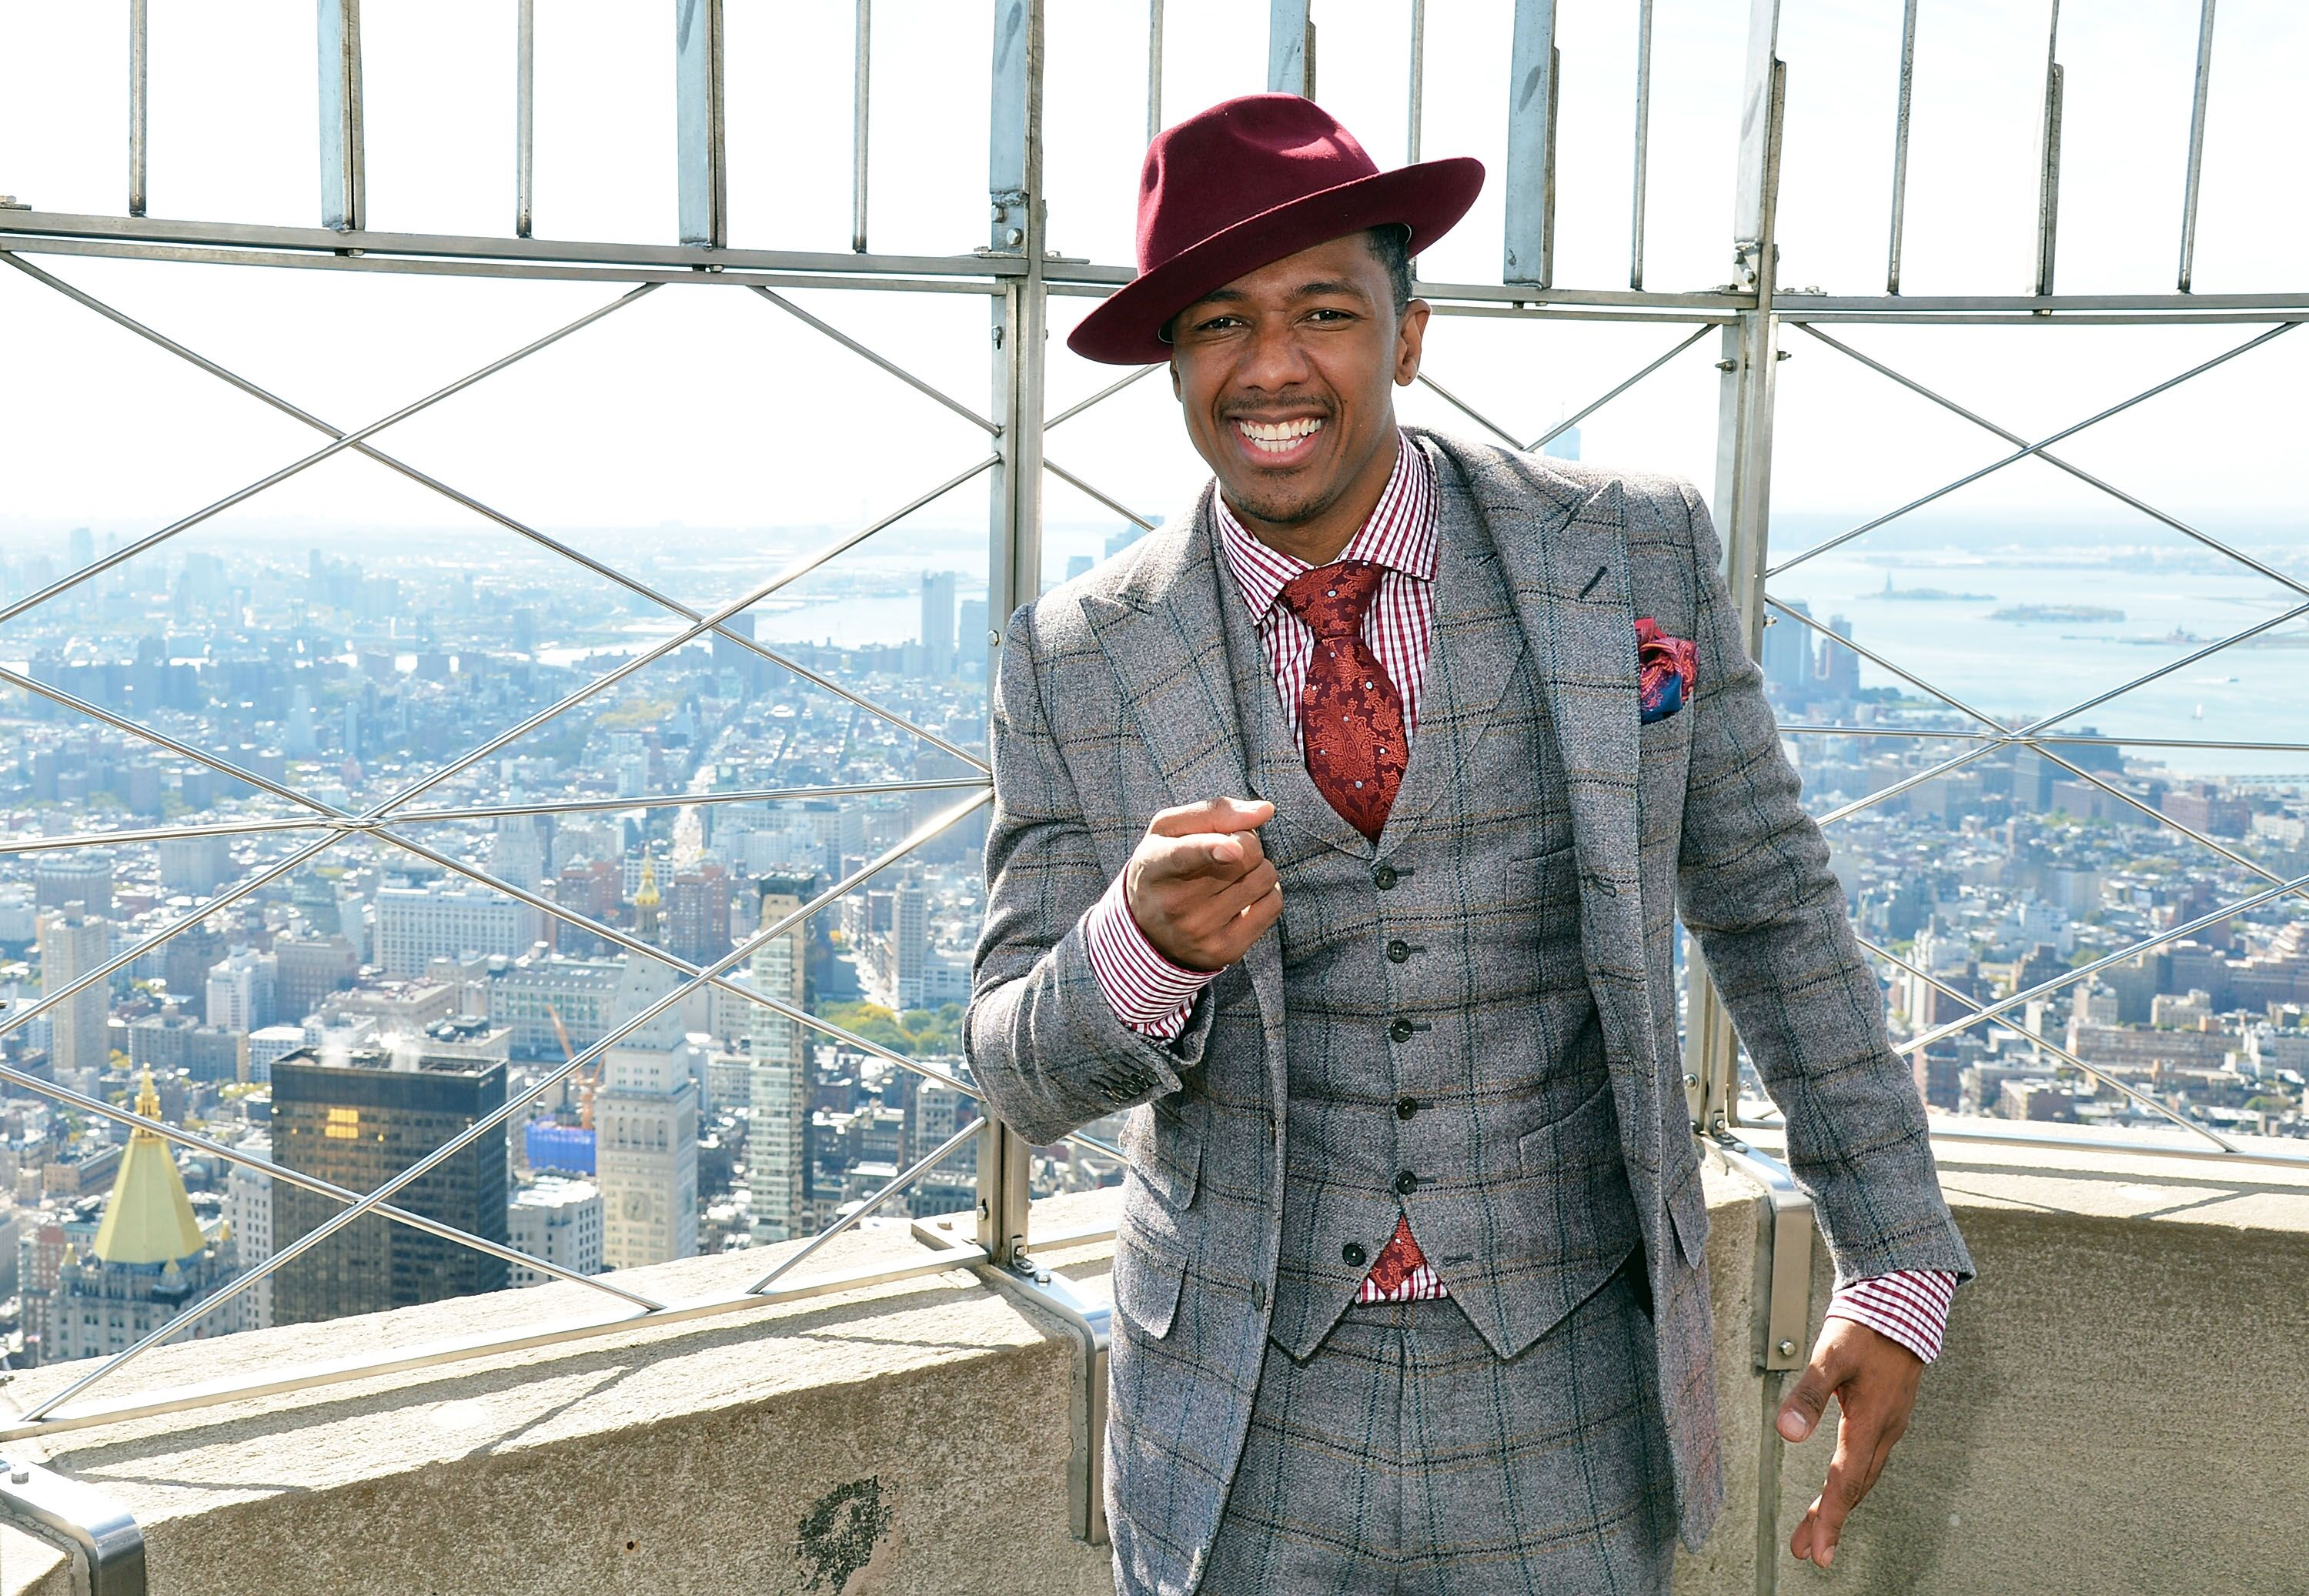 Nick Cannon at the viewing deck of the Empire State Building in New York | Photo: Getty Images